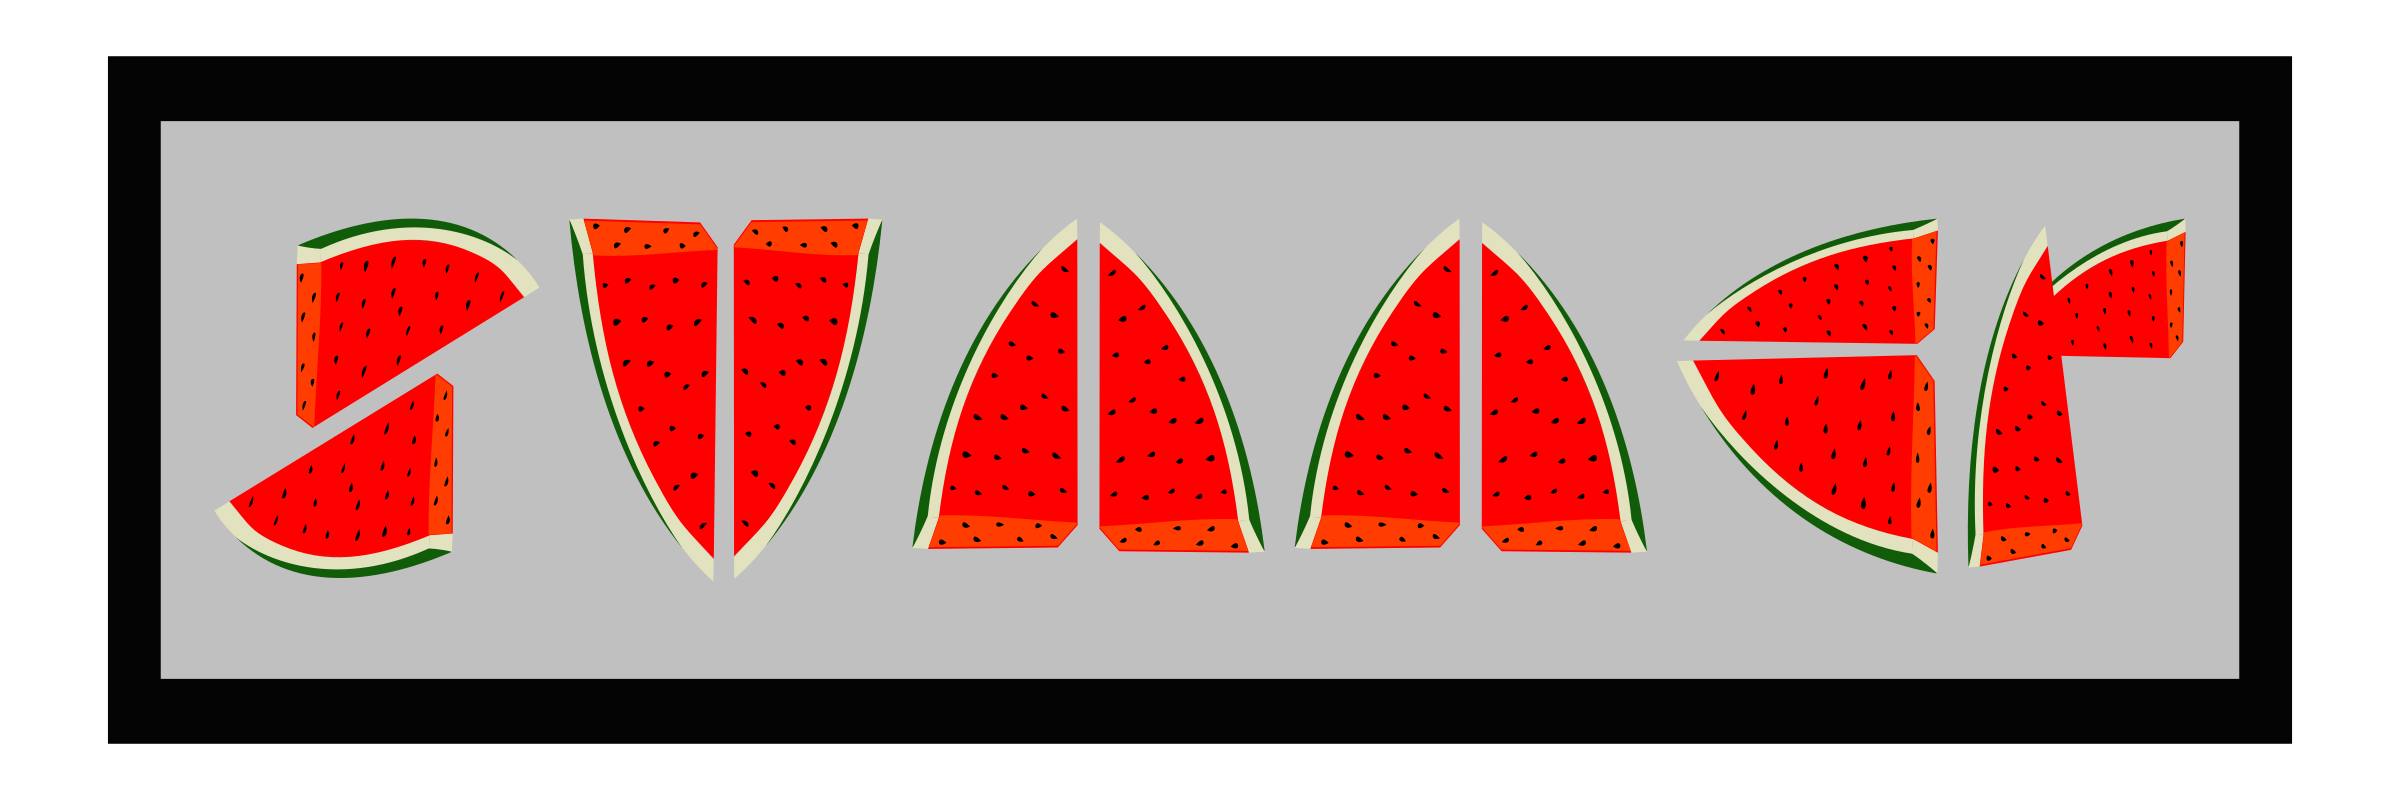 Logo big image png. Watermelon clipart summer